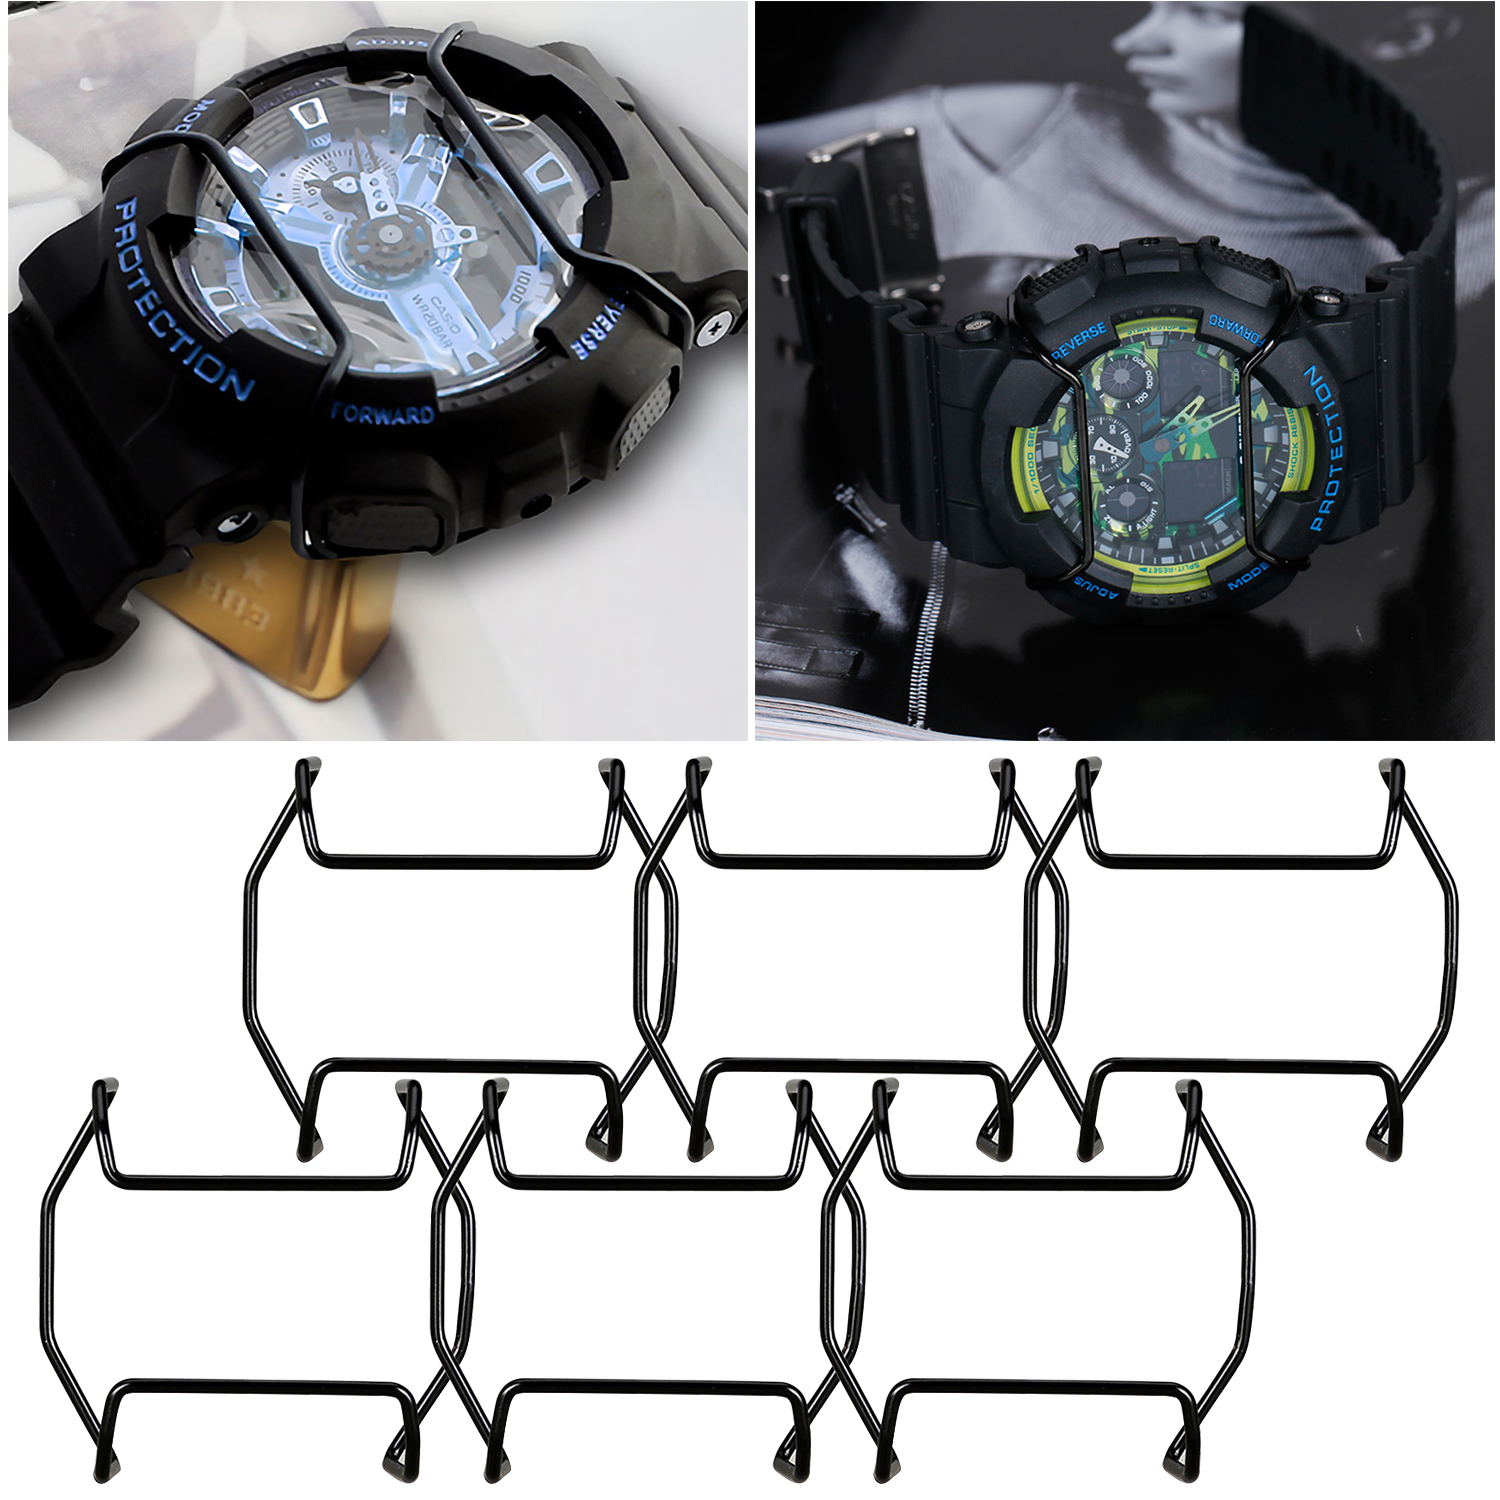 Gosear Stainless Steel Protective Guard Bumper for Casio G-Shock 5600 5610 6900 GA100 GX56\\\/GWX56 <font><b>GG1000</b></font> GWG1000 9400 image